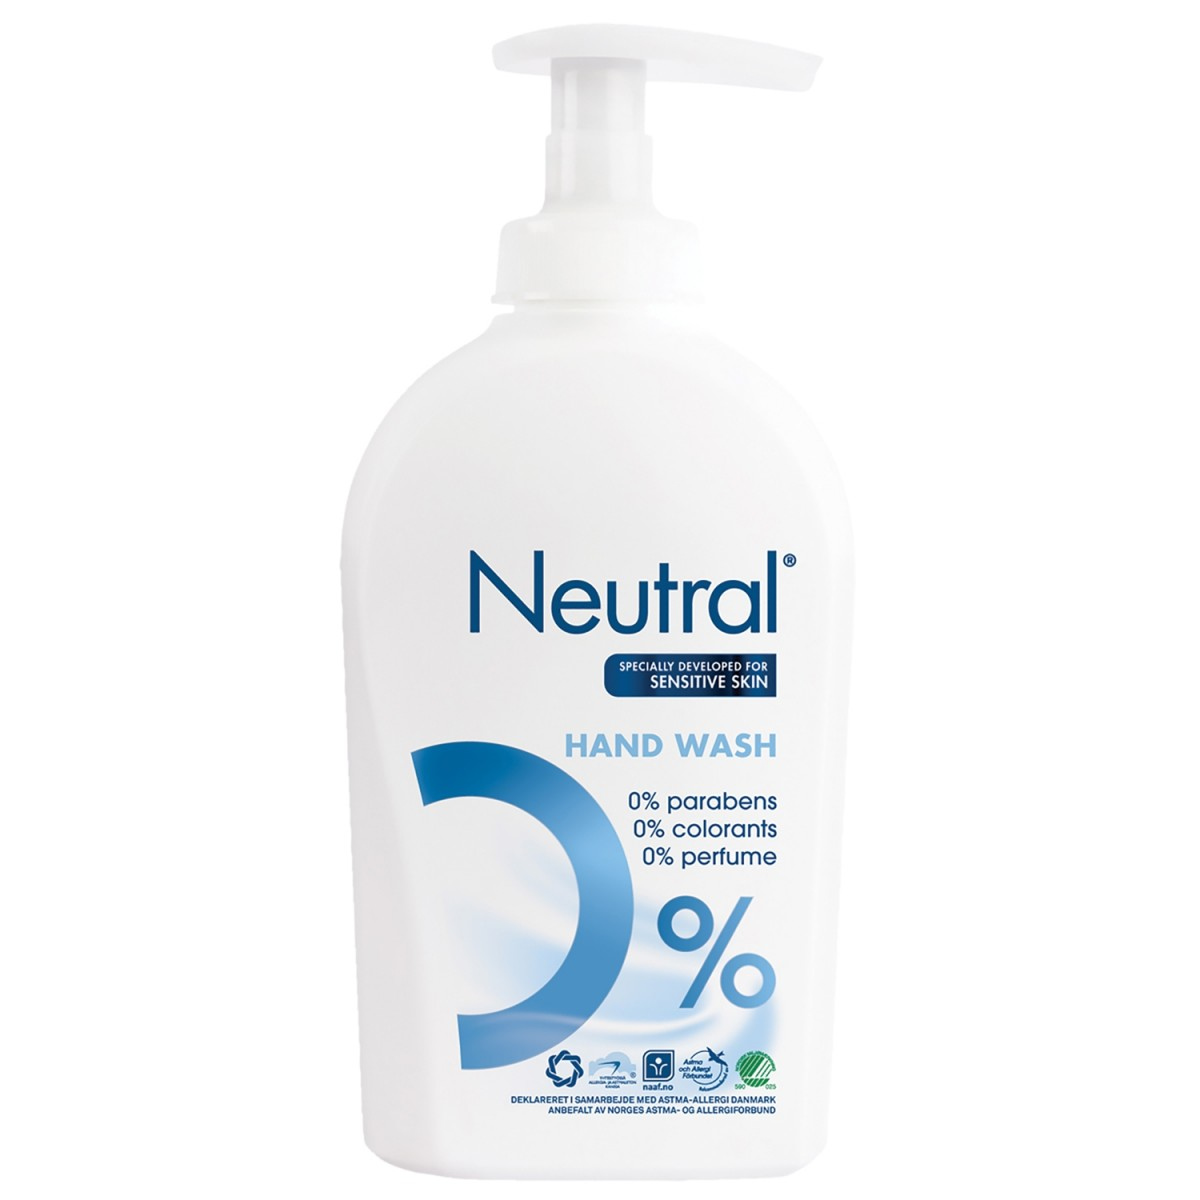 Cremesæbe Neutral Handwash med pumpe 250 ml.-31